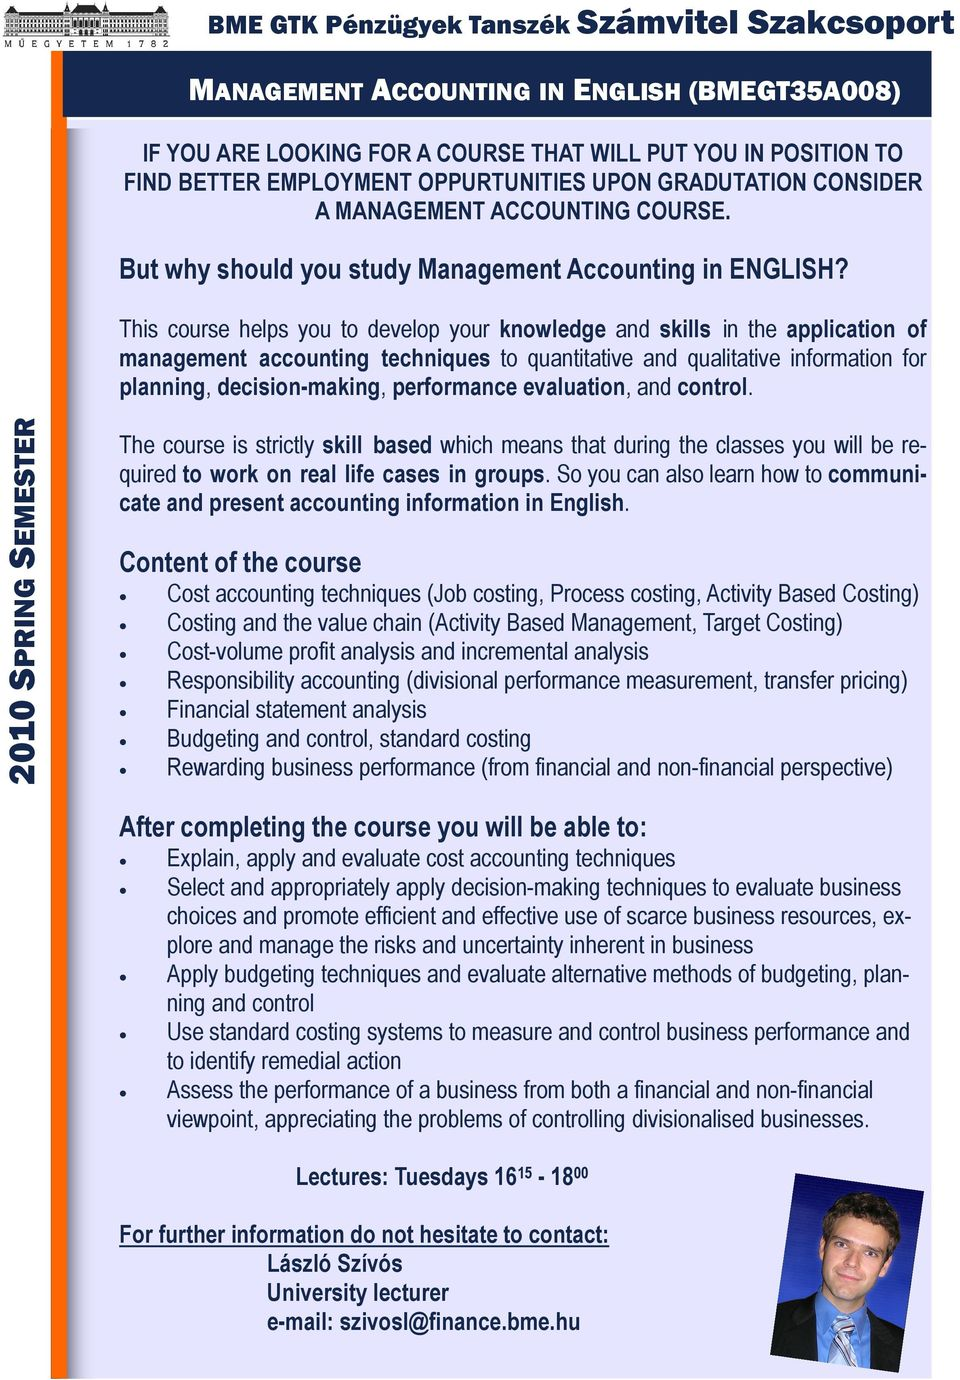 This course helps you to develop your knowledge and skills in the application of management accounting techniques to quantitative and qualitative information for planning, decision-making,